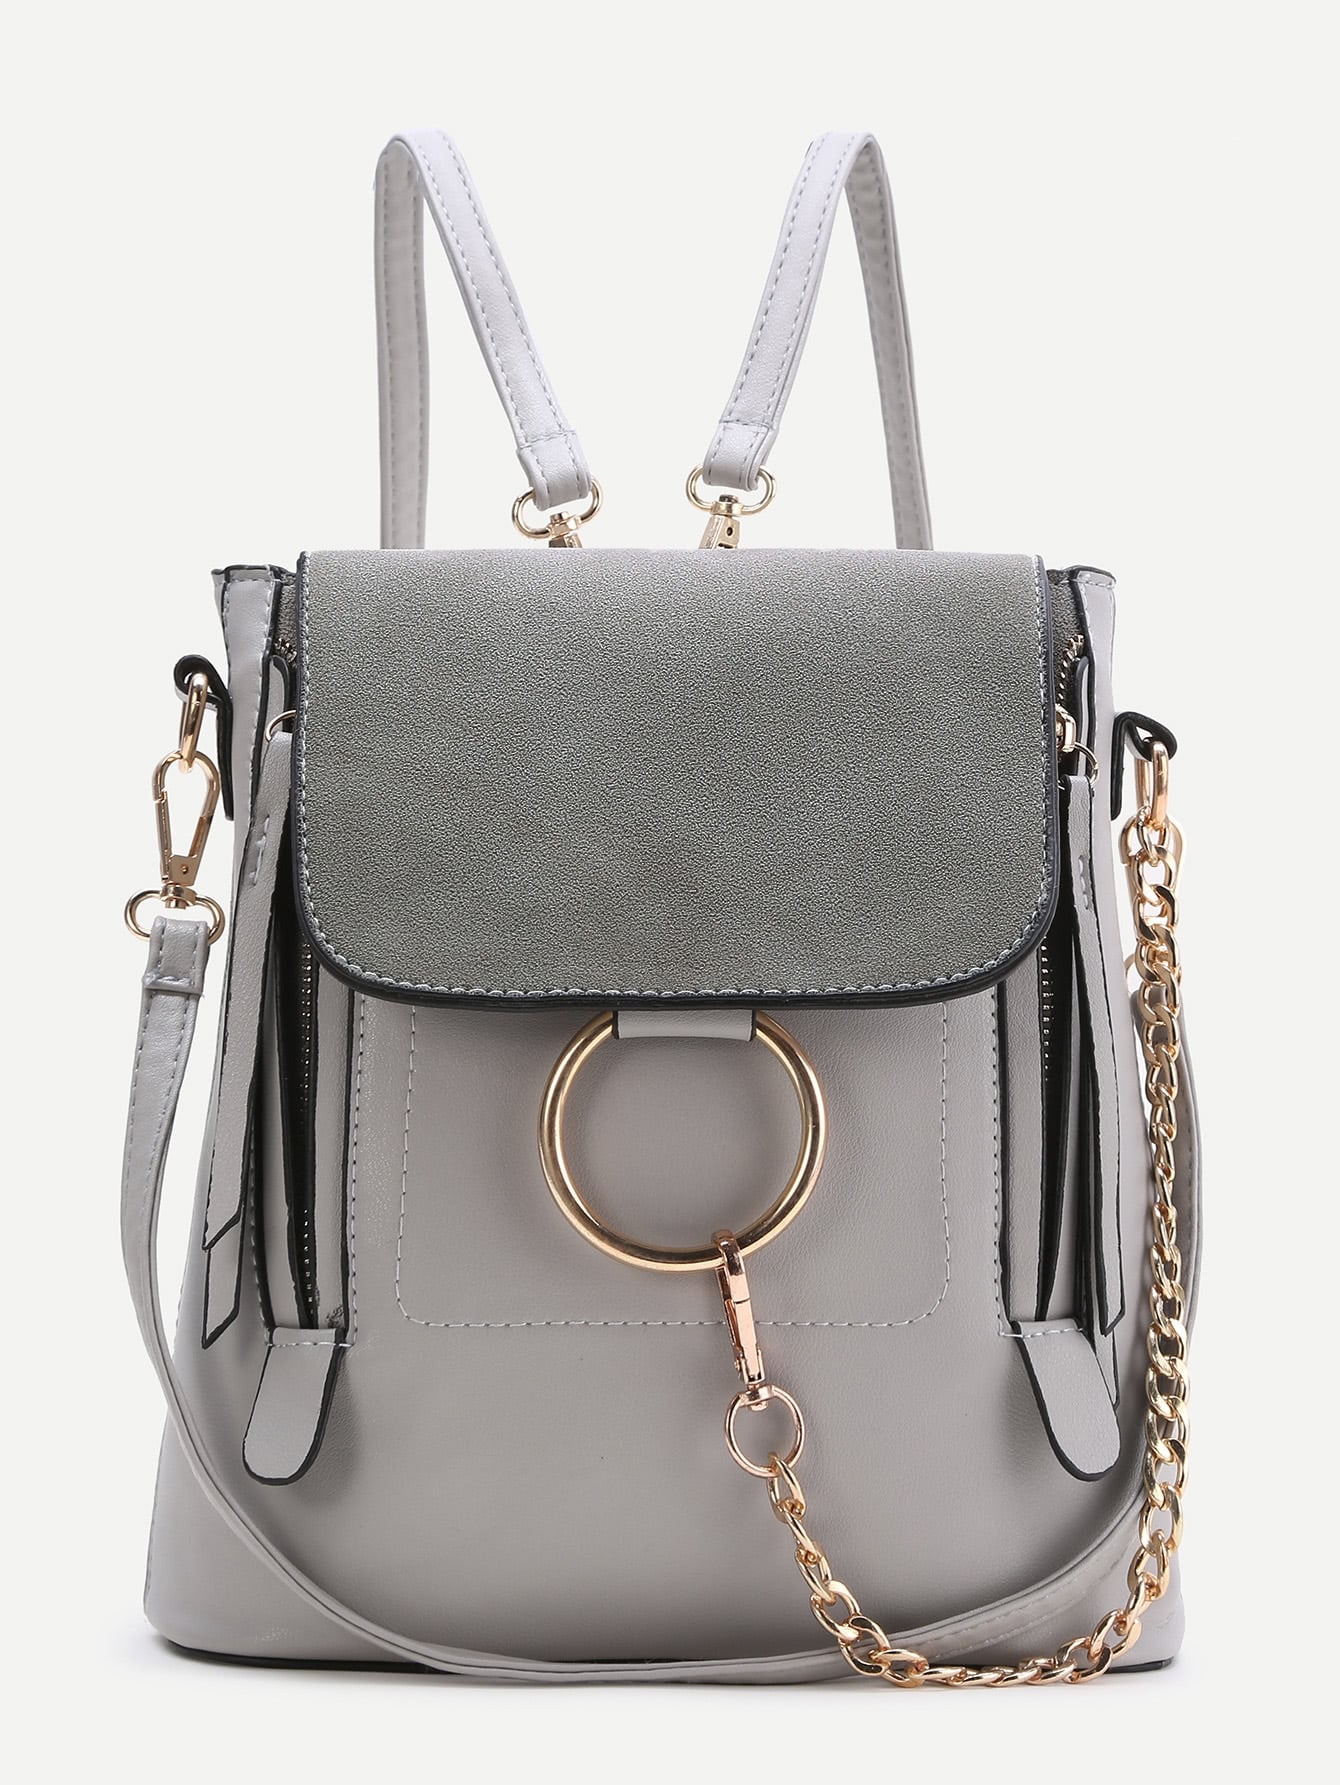 grey backpack with gold details